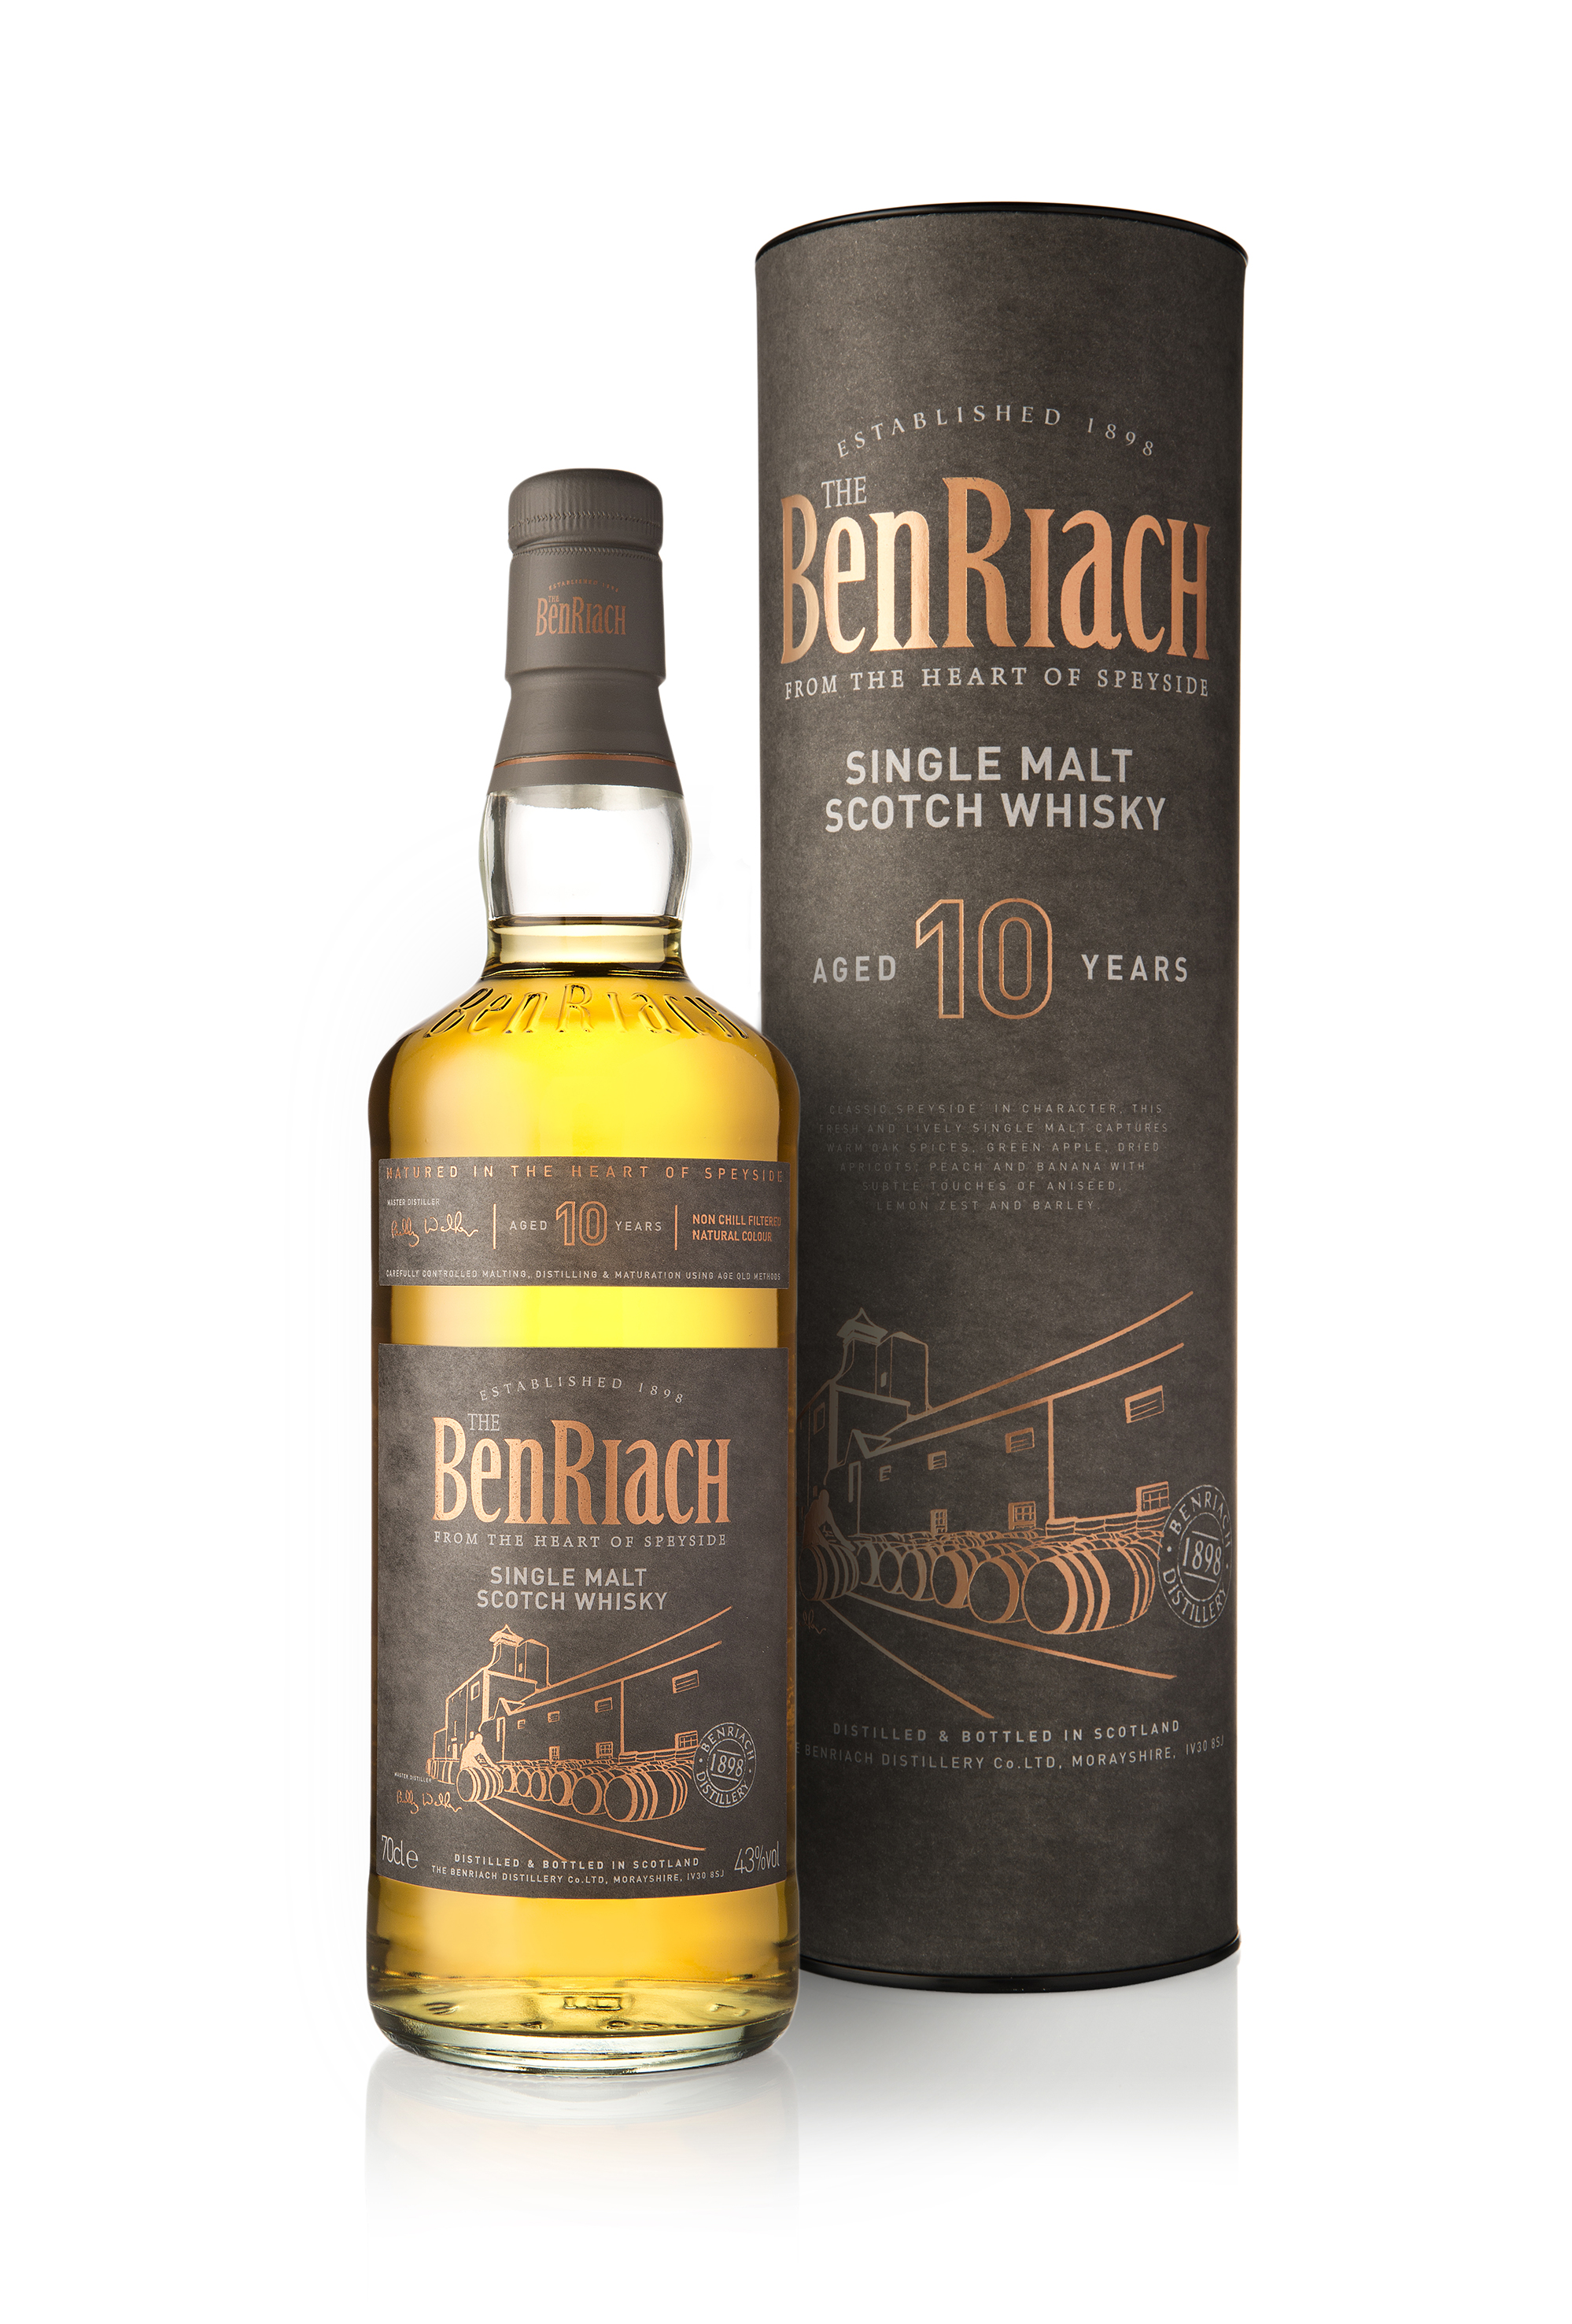 Benriach 10 yrs old